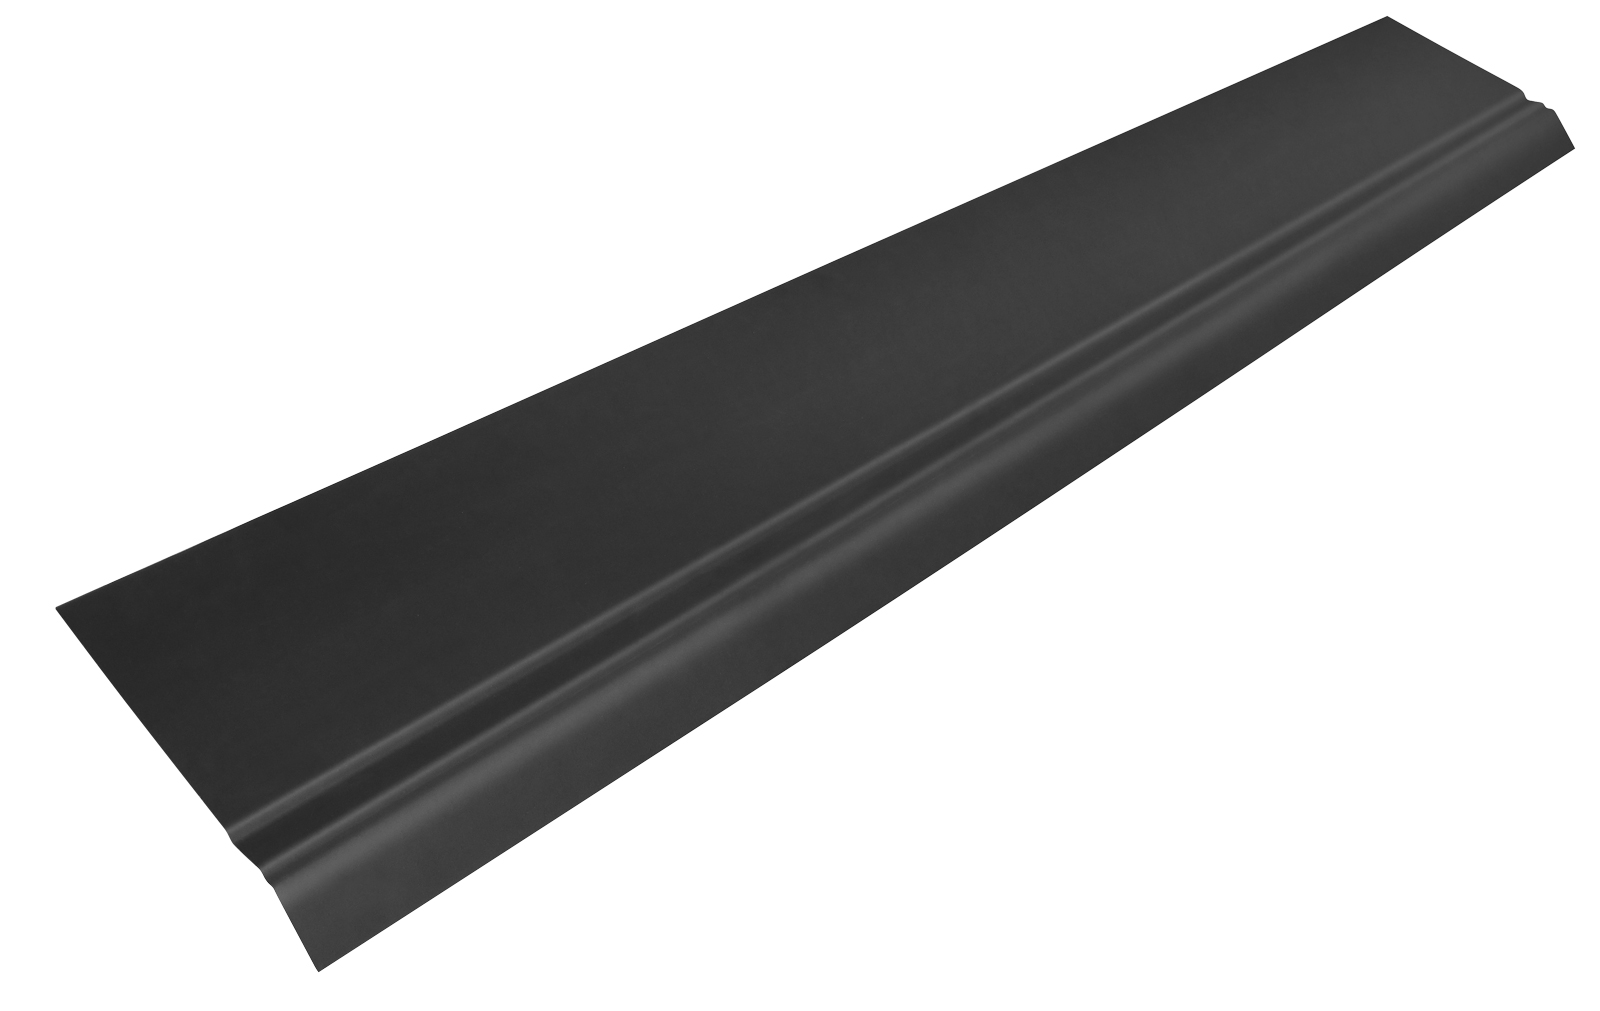 1 5m Eaves Protector Felt Support Tray Truly Pvc